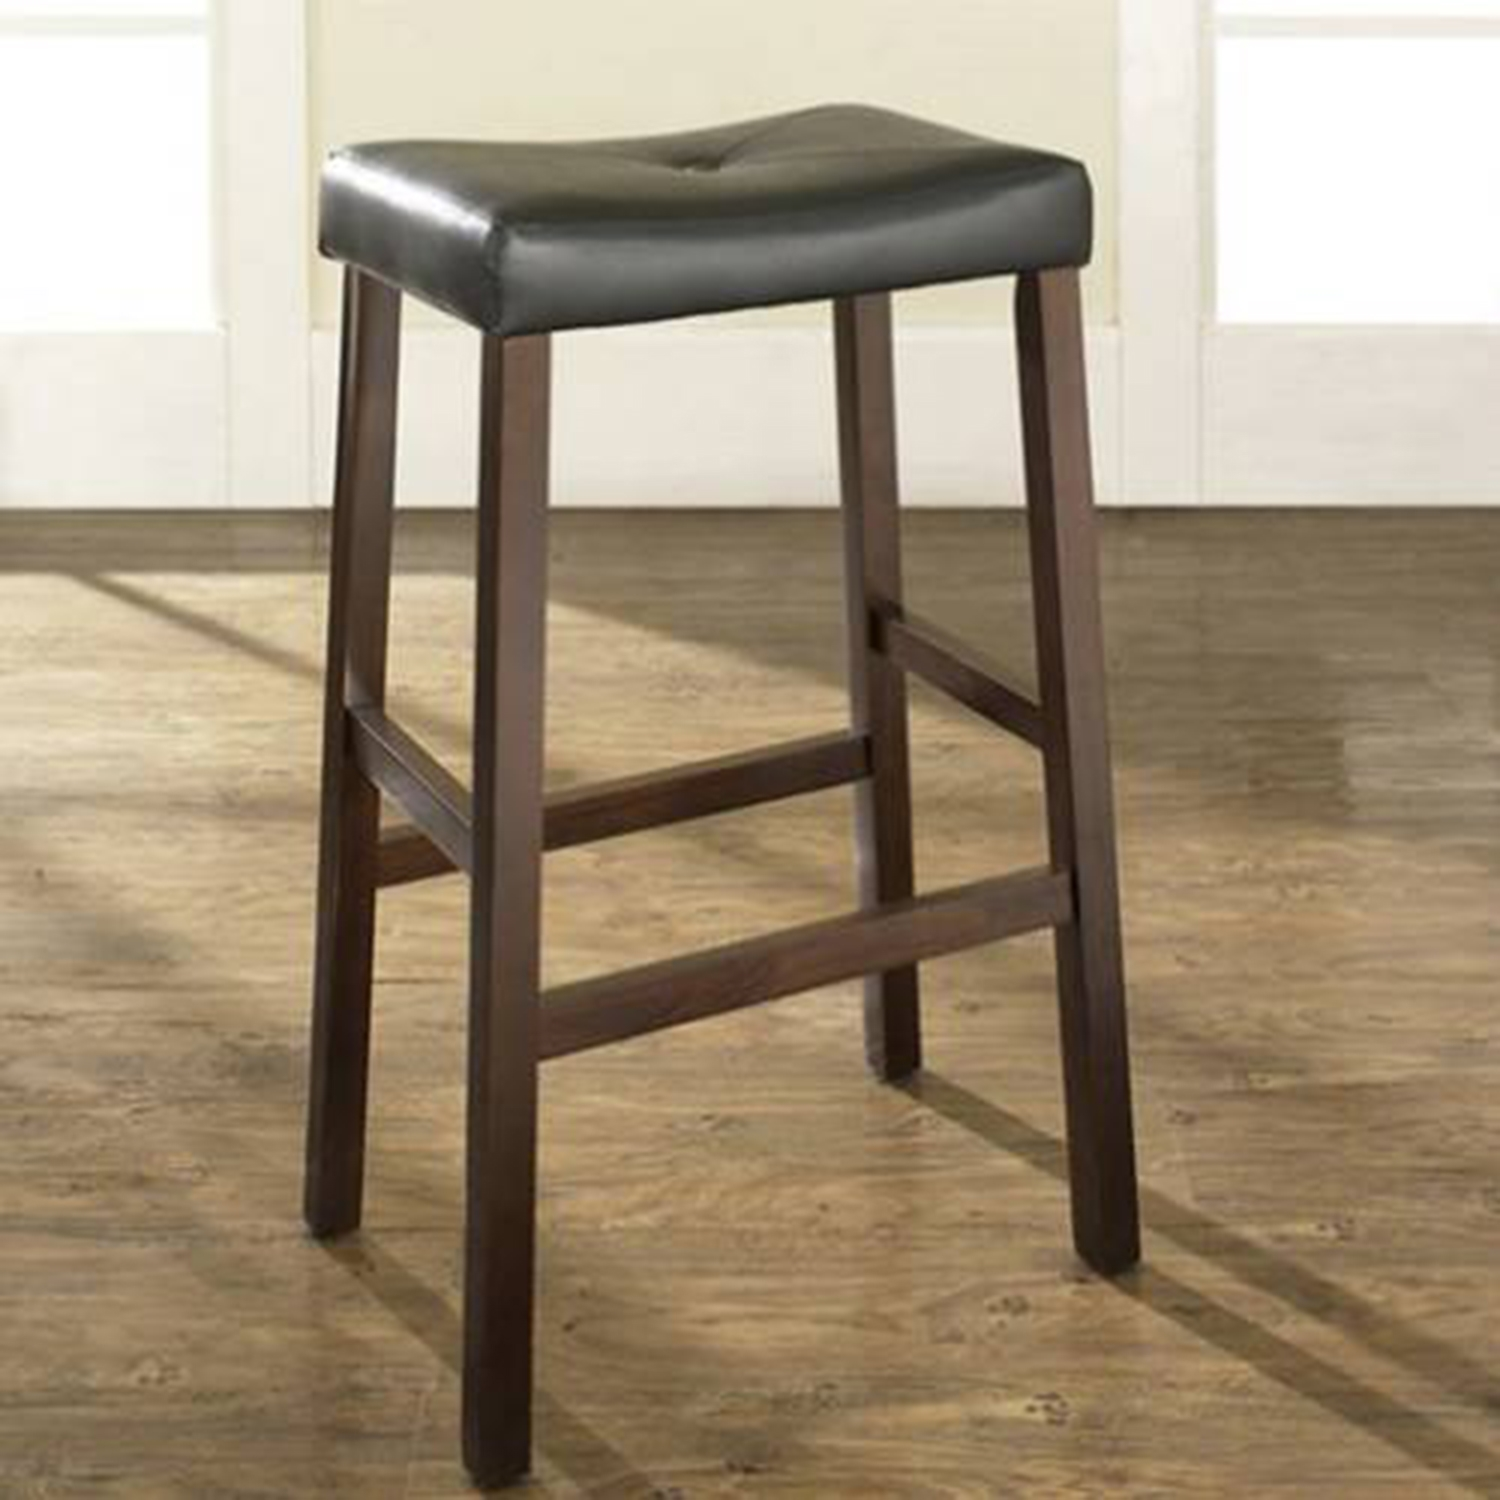 Upholstered Saddle Seat Bar Stool with 29 Inch Seat - Vintage Mahogany (Set of 2) - CROS-CF500229-MA